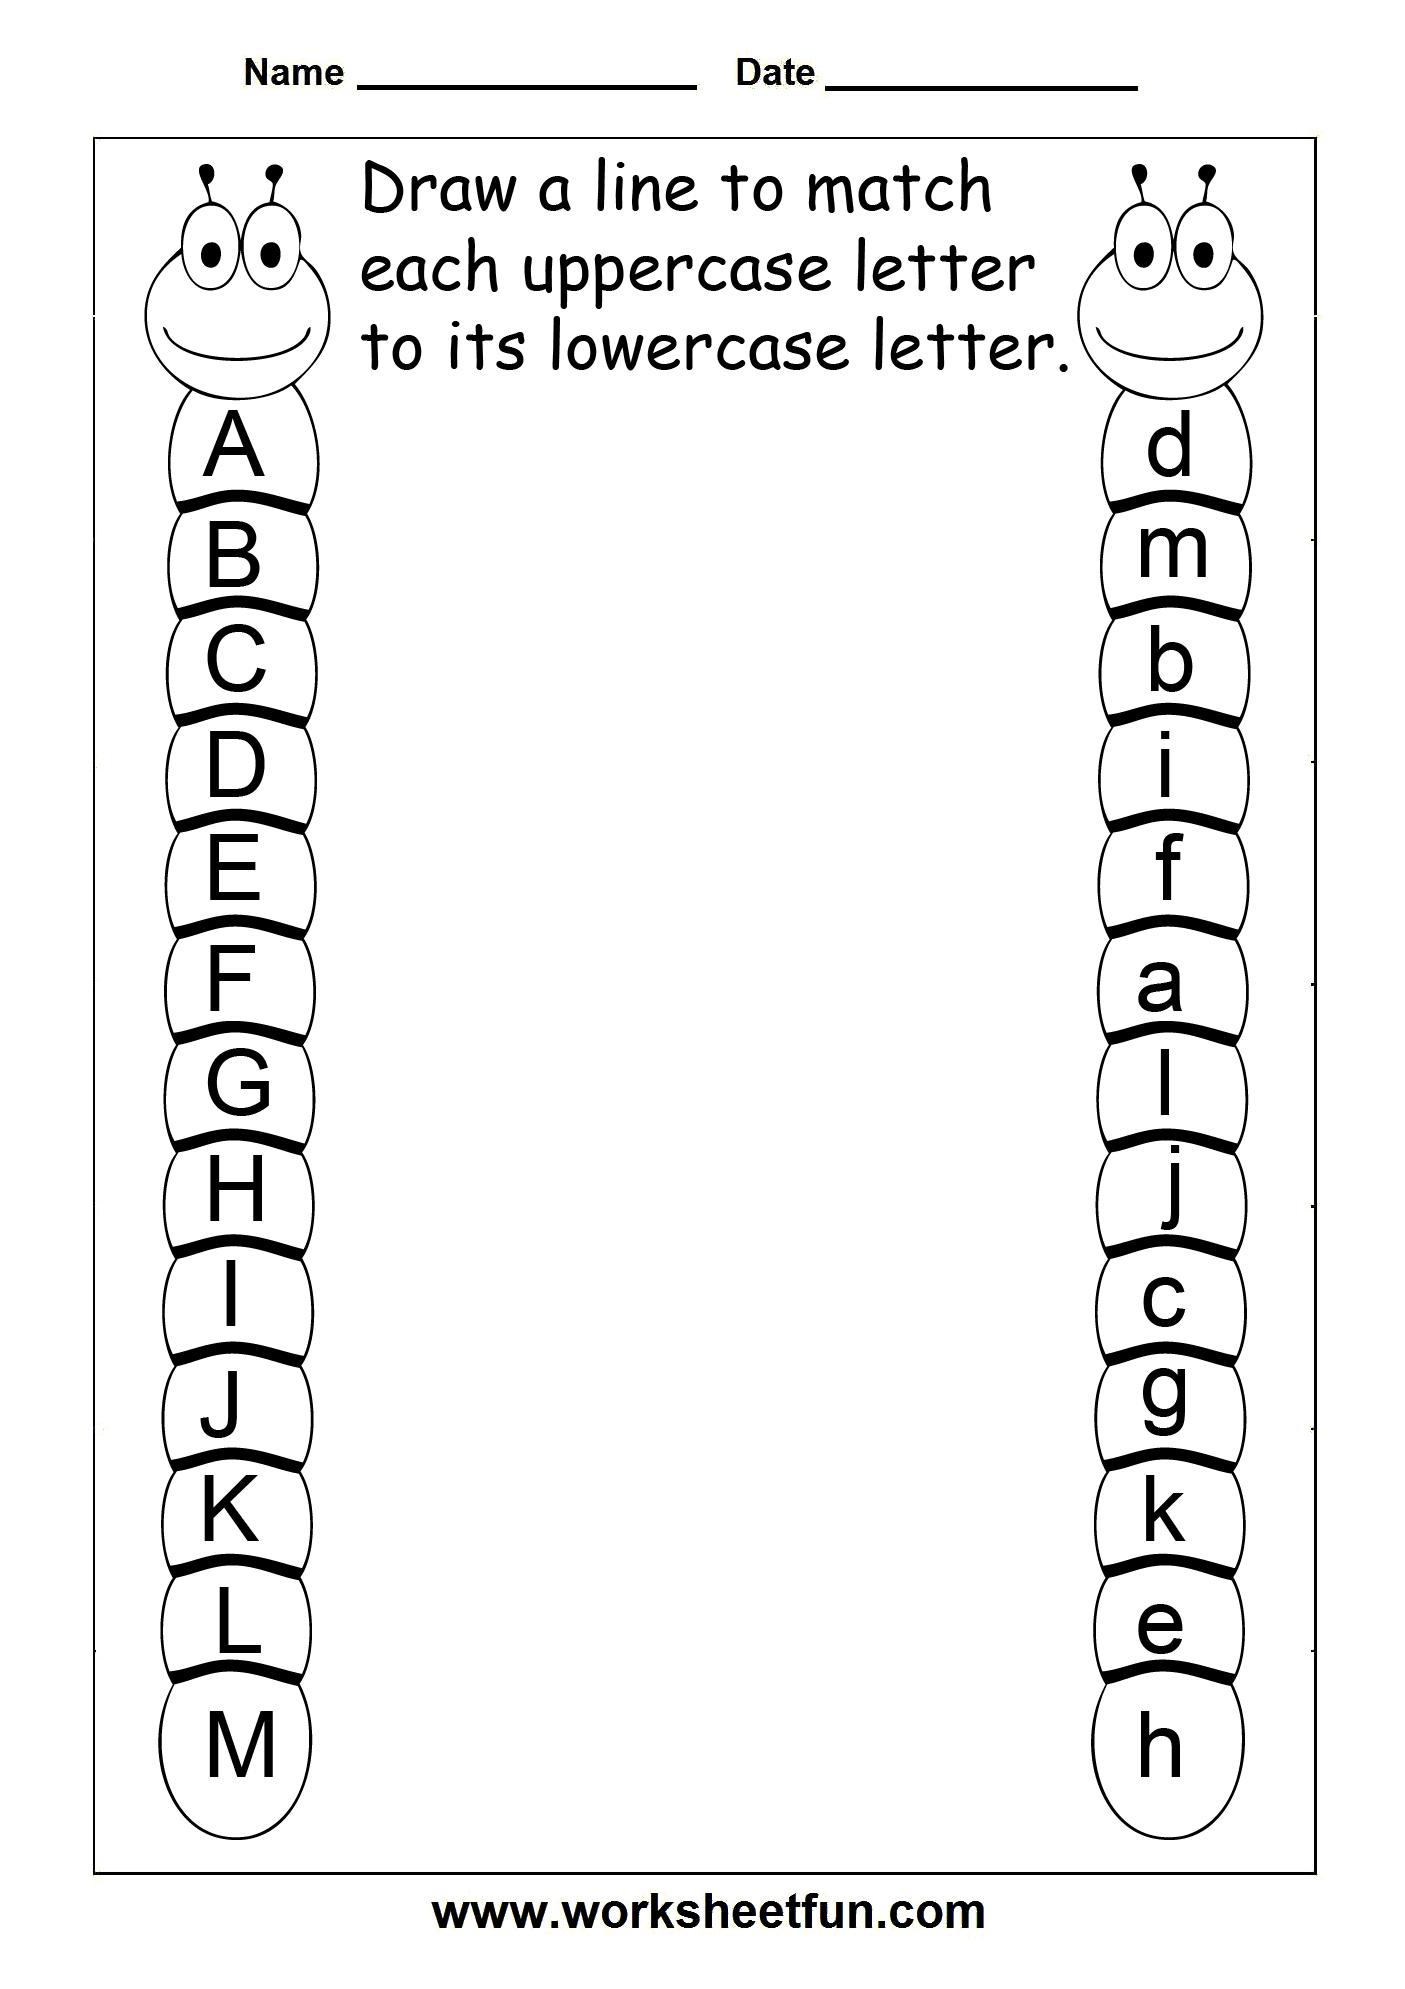 Weirdmailus  Wonderful  Images About Work Worksheet On Pinterest  Hidden Pictures  With Gorgeous  Images About Work Worksheet On Pinterest  Hidden Pictures Color By Numbers And Puzzles With Charming Worksheets On Subordinating Conjunctions Also Parts Of The Face Worksheet For Kindergarten In Addition First Grade Worksheets Math And Stoichiometry Mixed Problems Worksheet Answers As Well As Times Tables Drills Worksheets Additionally Scatter Diagram Worksheet From Pinterestcom With Weirdmailus  Gorgeous  Images About Work Worksheet On Pinterest  Hidden Pictures  With Charming  Images About Work Worksheet On Pinterest  Hidden Pictures Color By Numbers And Puzzles And Wonderful Worksheets On Subordinating Conjunctions Also Parts Of The Face Worksheet For Kindergarten In Addition First Grade Worksheets Math From Pinterestcom